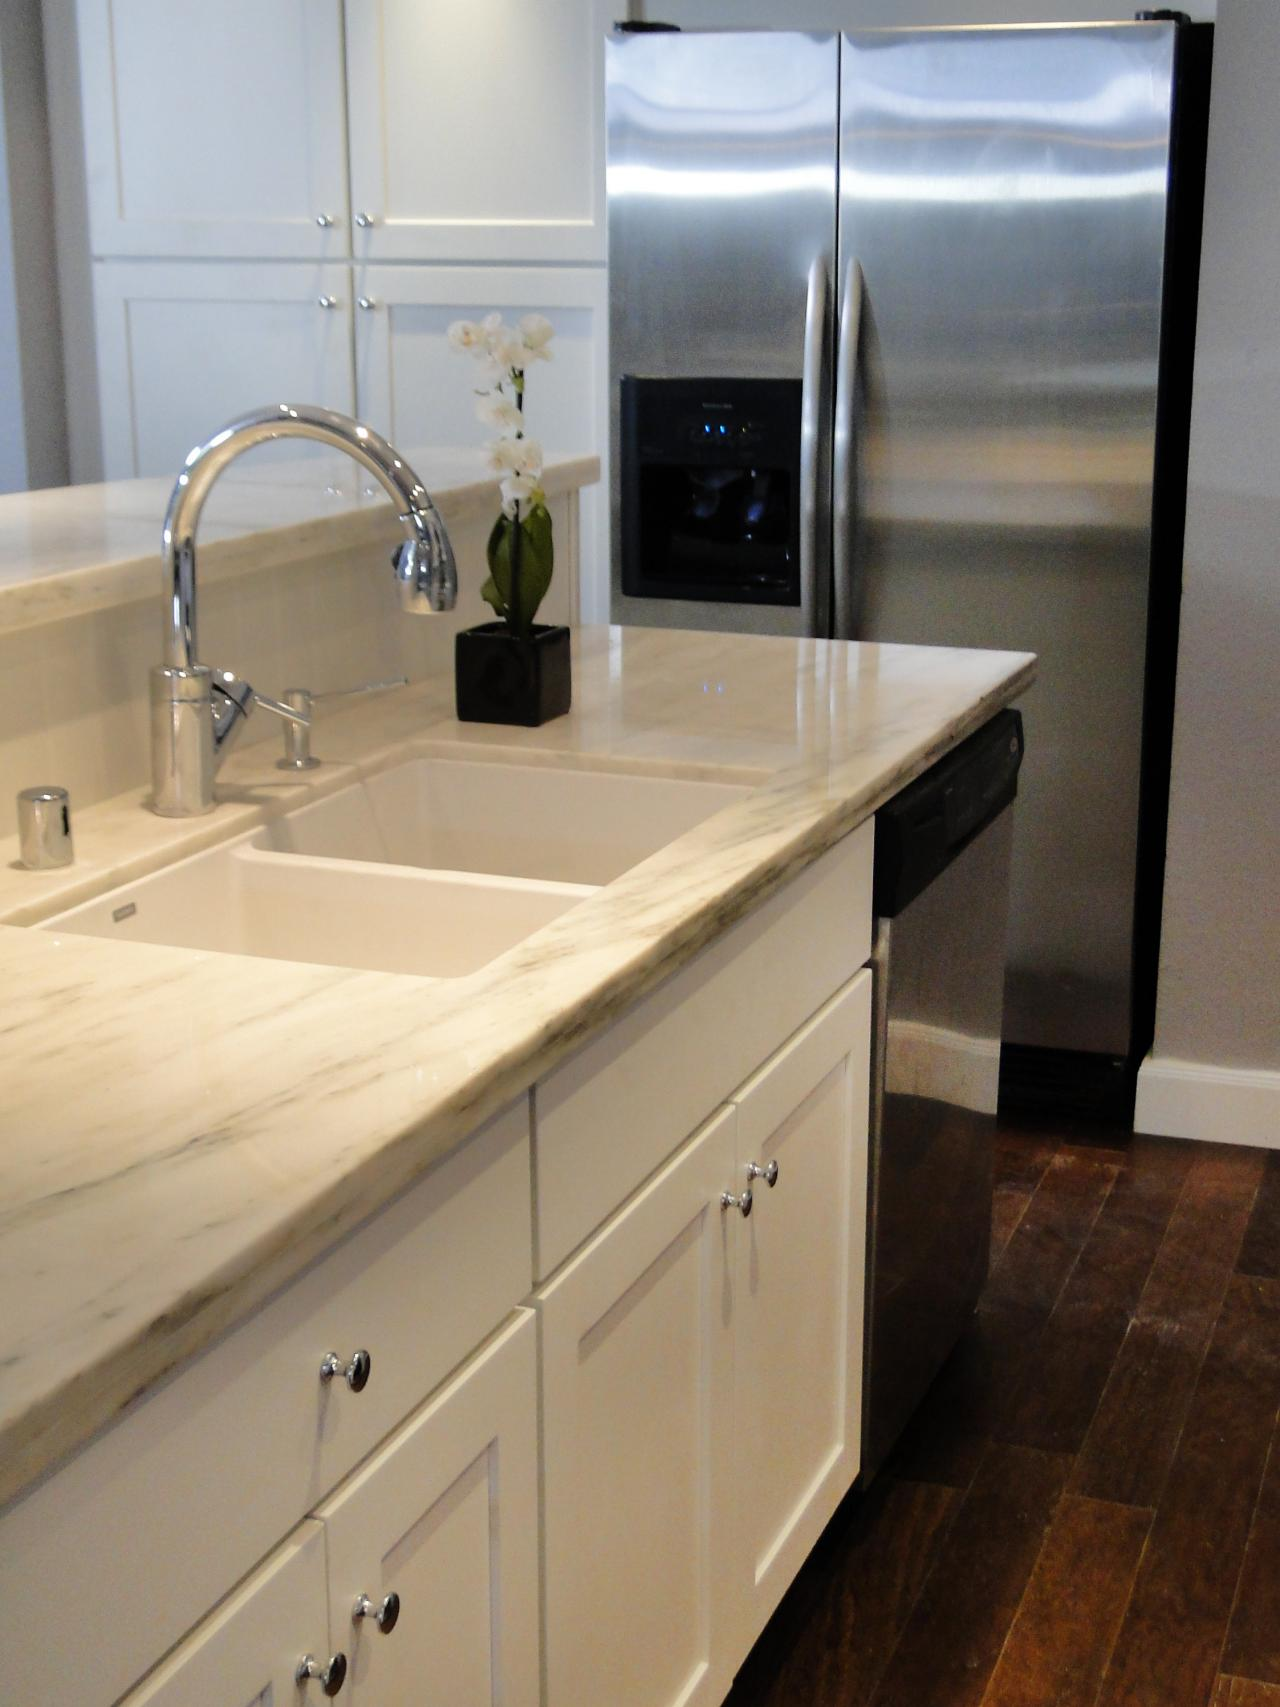 How To Care For Solid Surface Countertops Diy